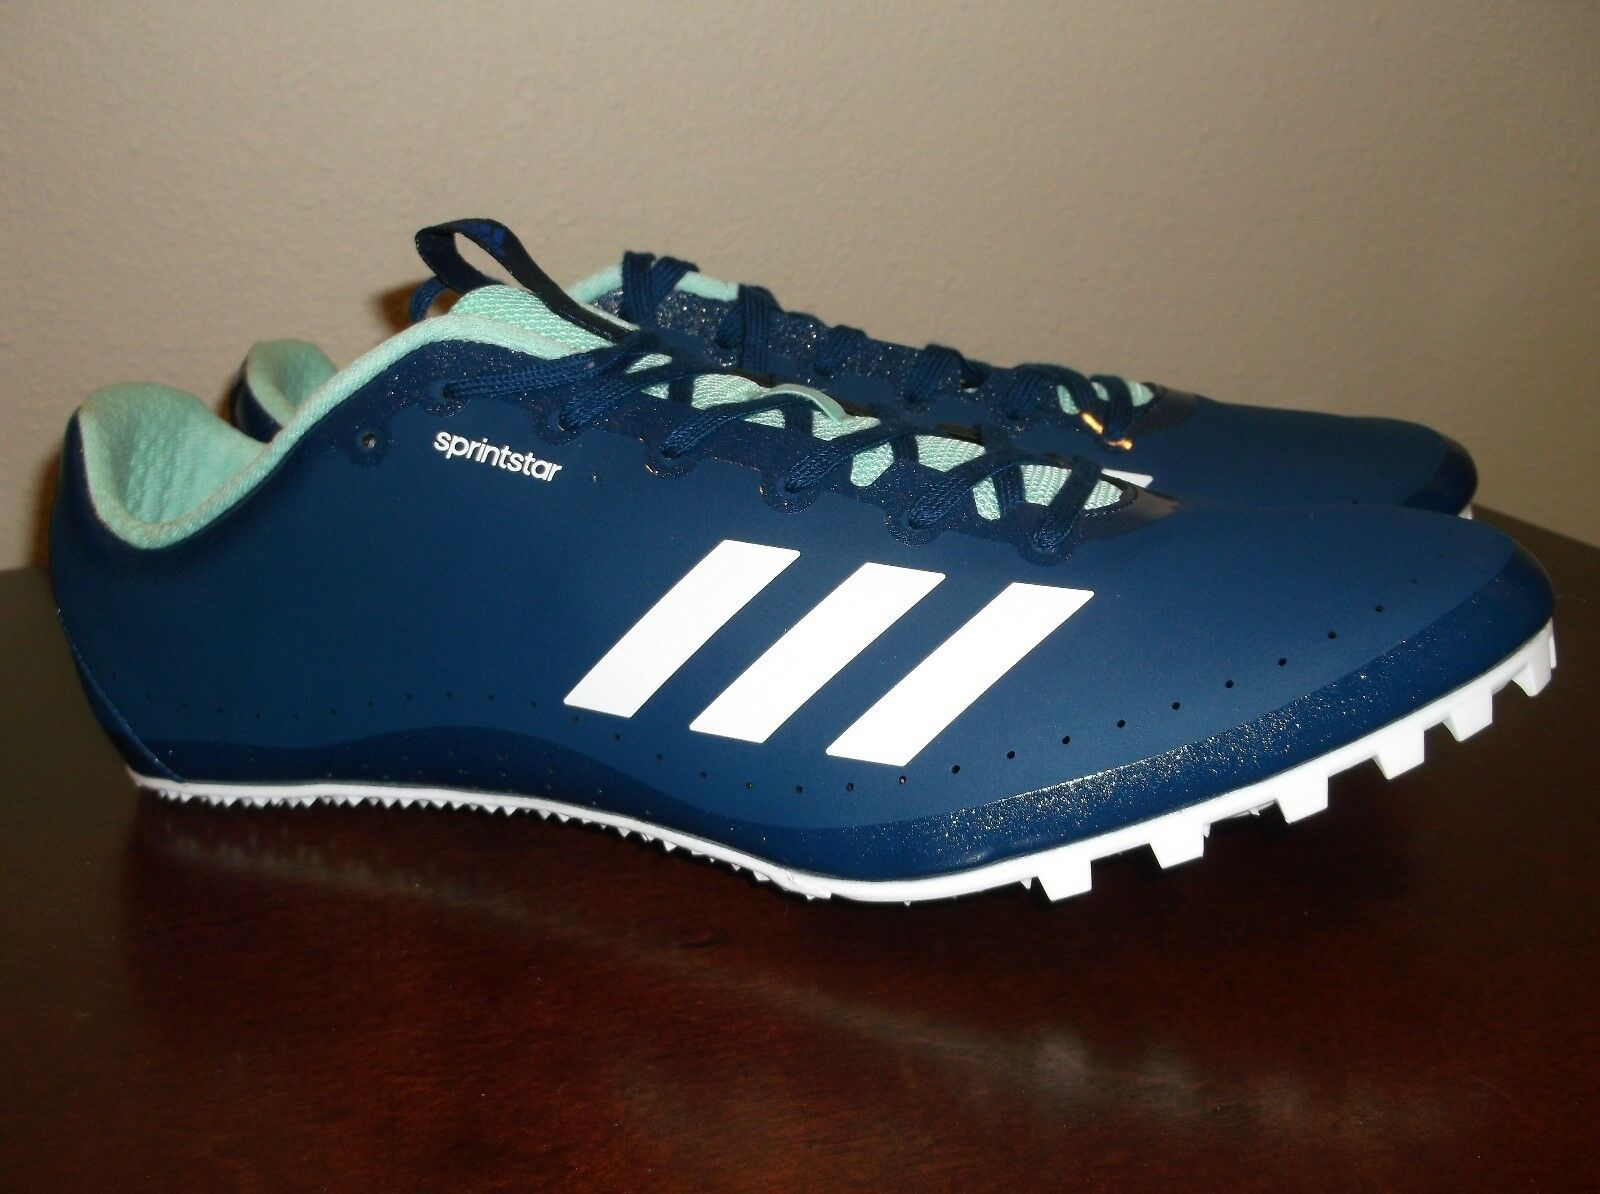 Adidas SprintStar Track and Field Sprint Spikes size 12 nwt Free Ship